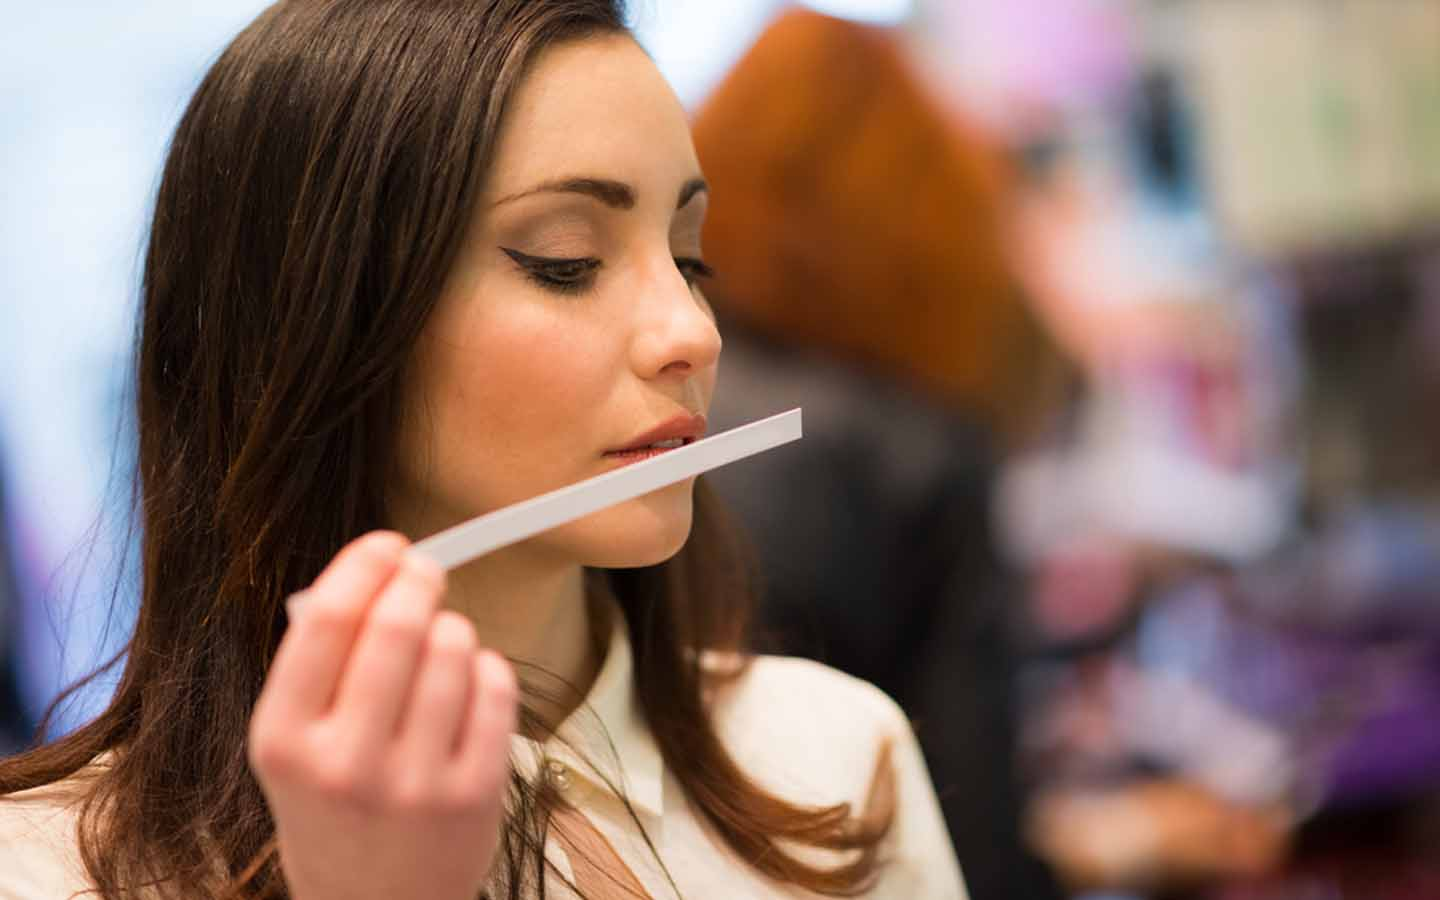 A lady testing scents at perfume shops in Dubai